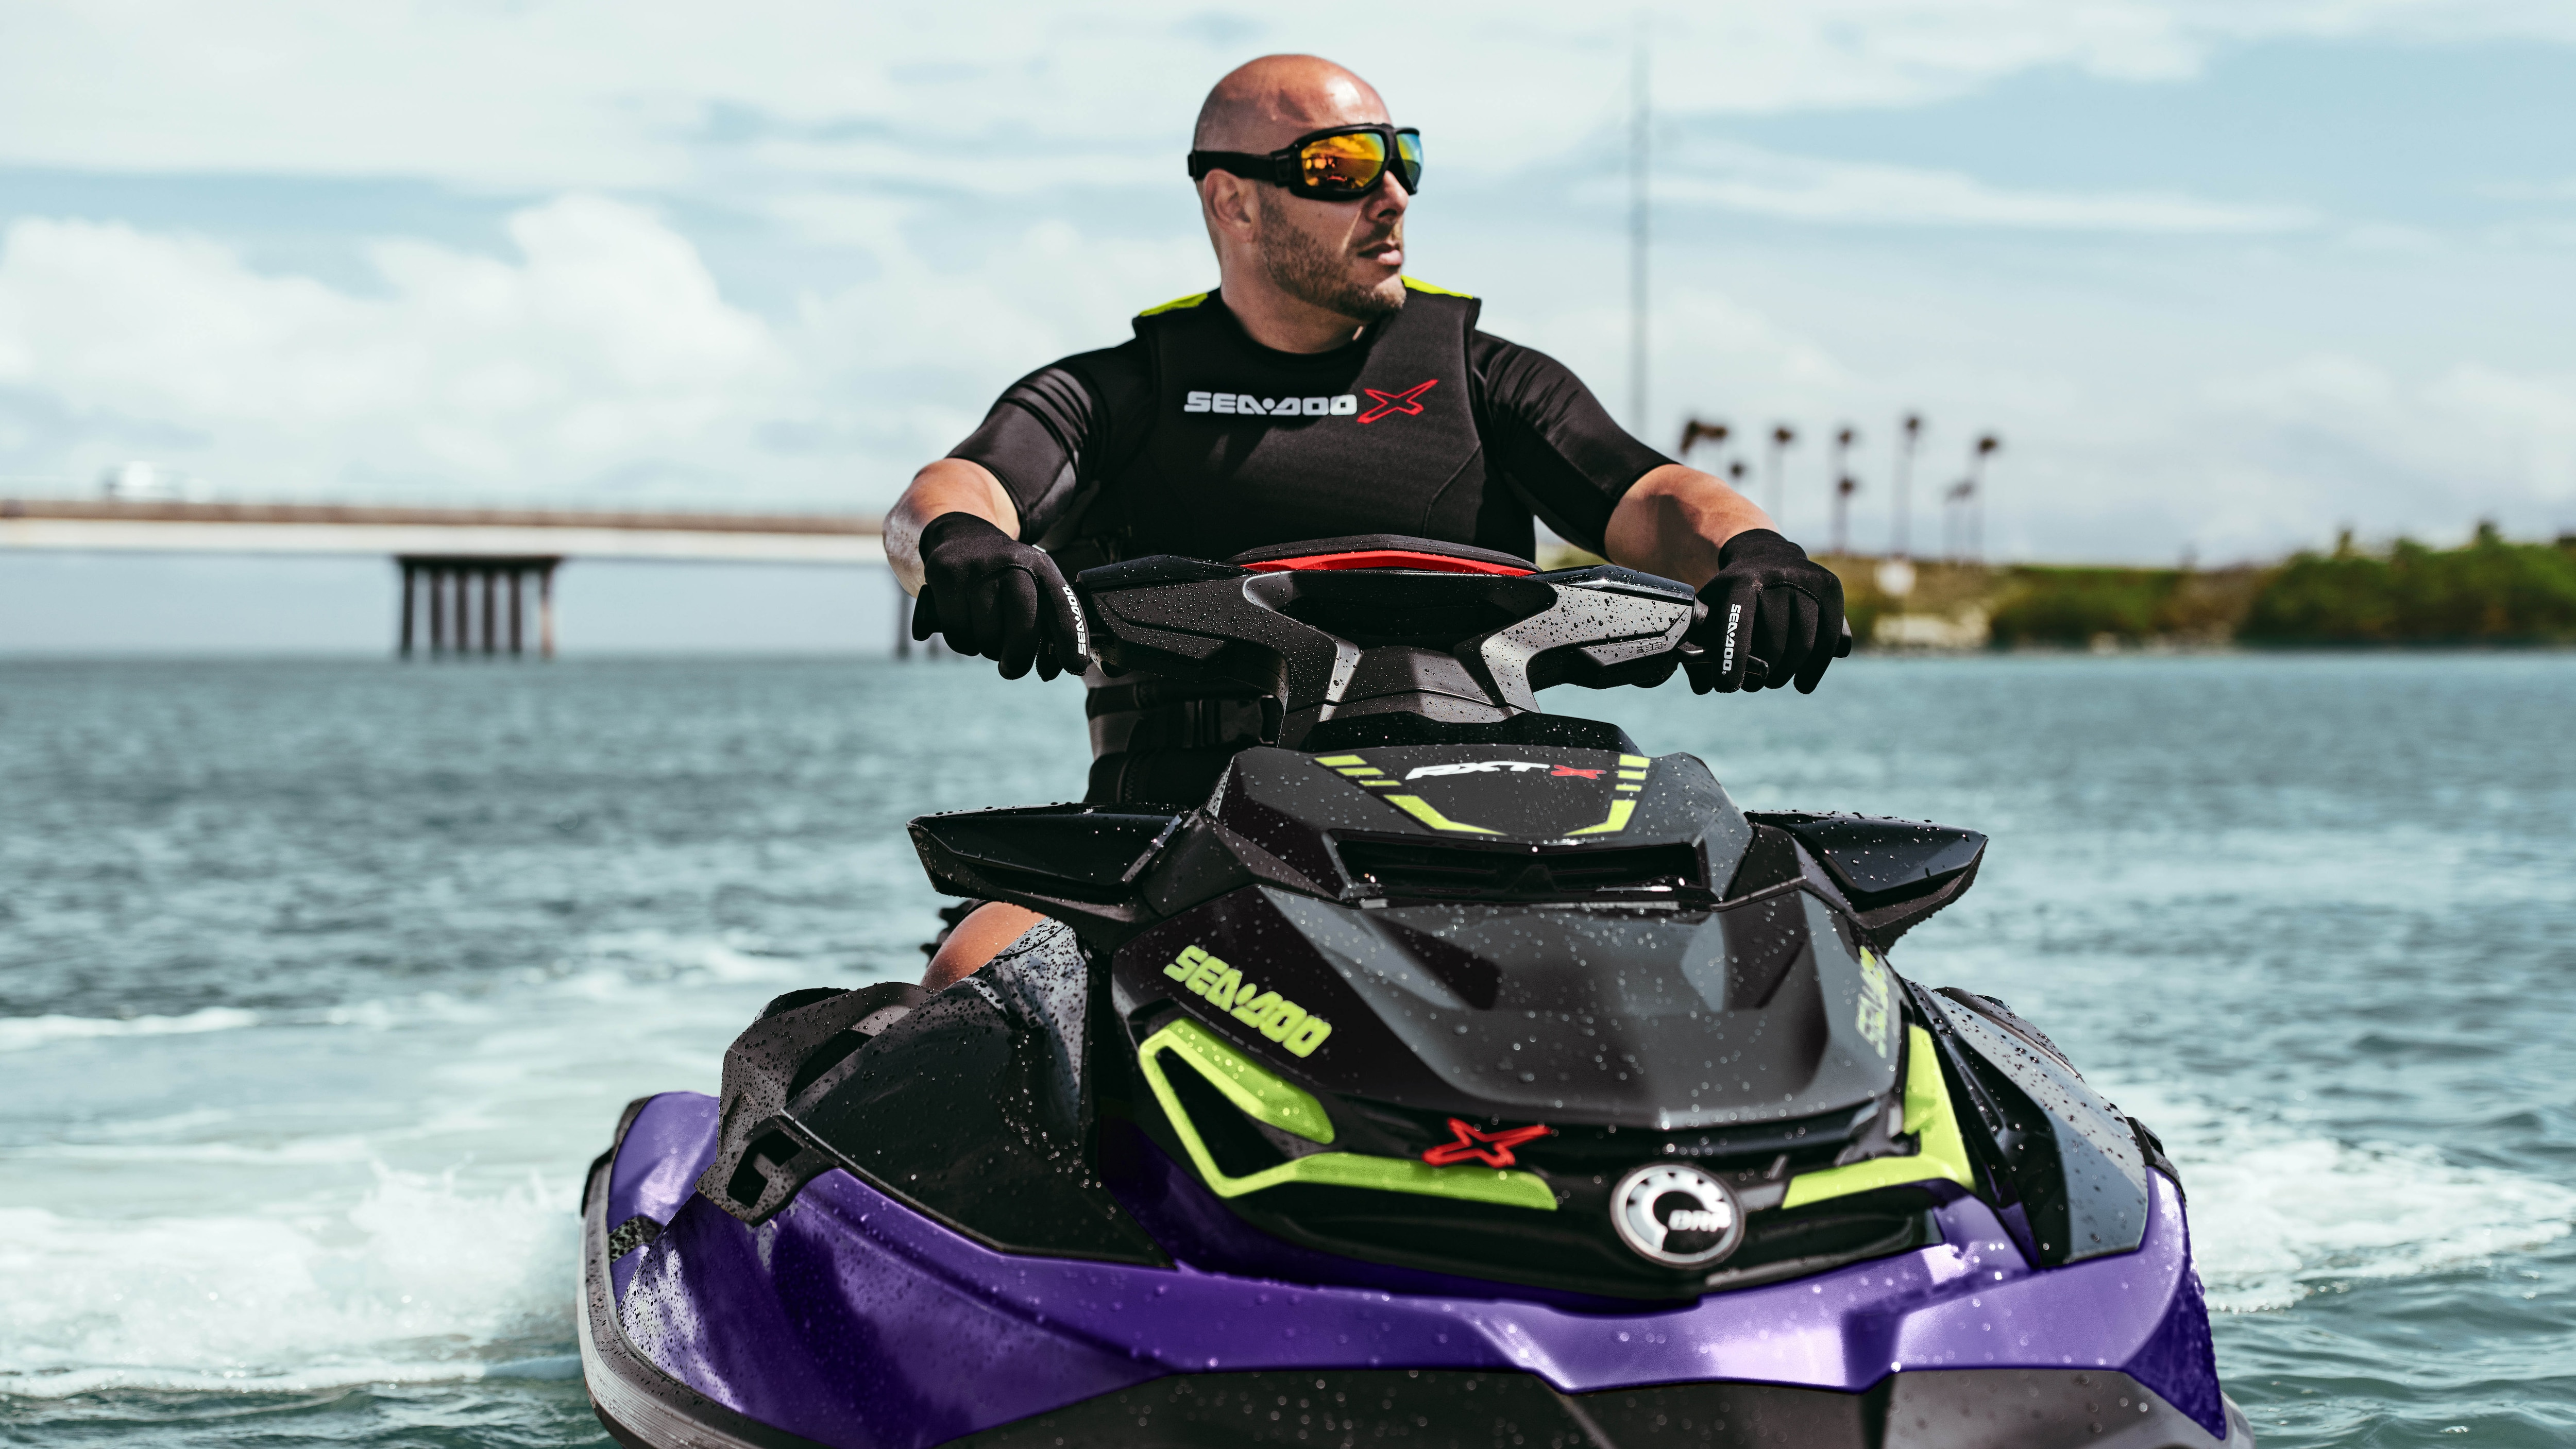 Man riding a Sea-Doo RXT-X with ergolock seat